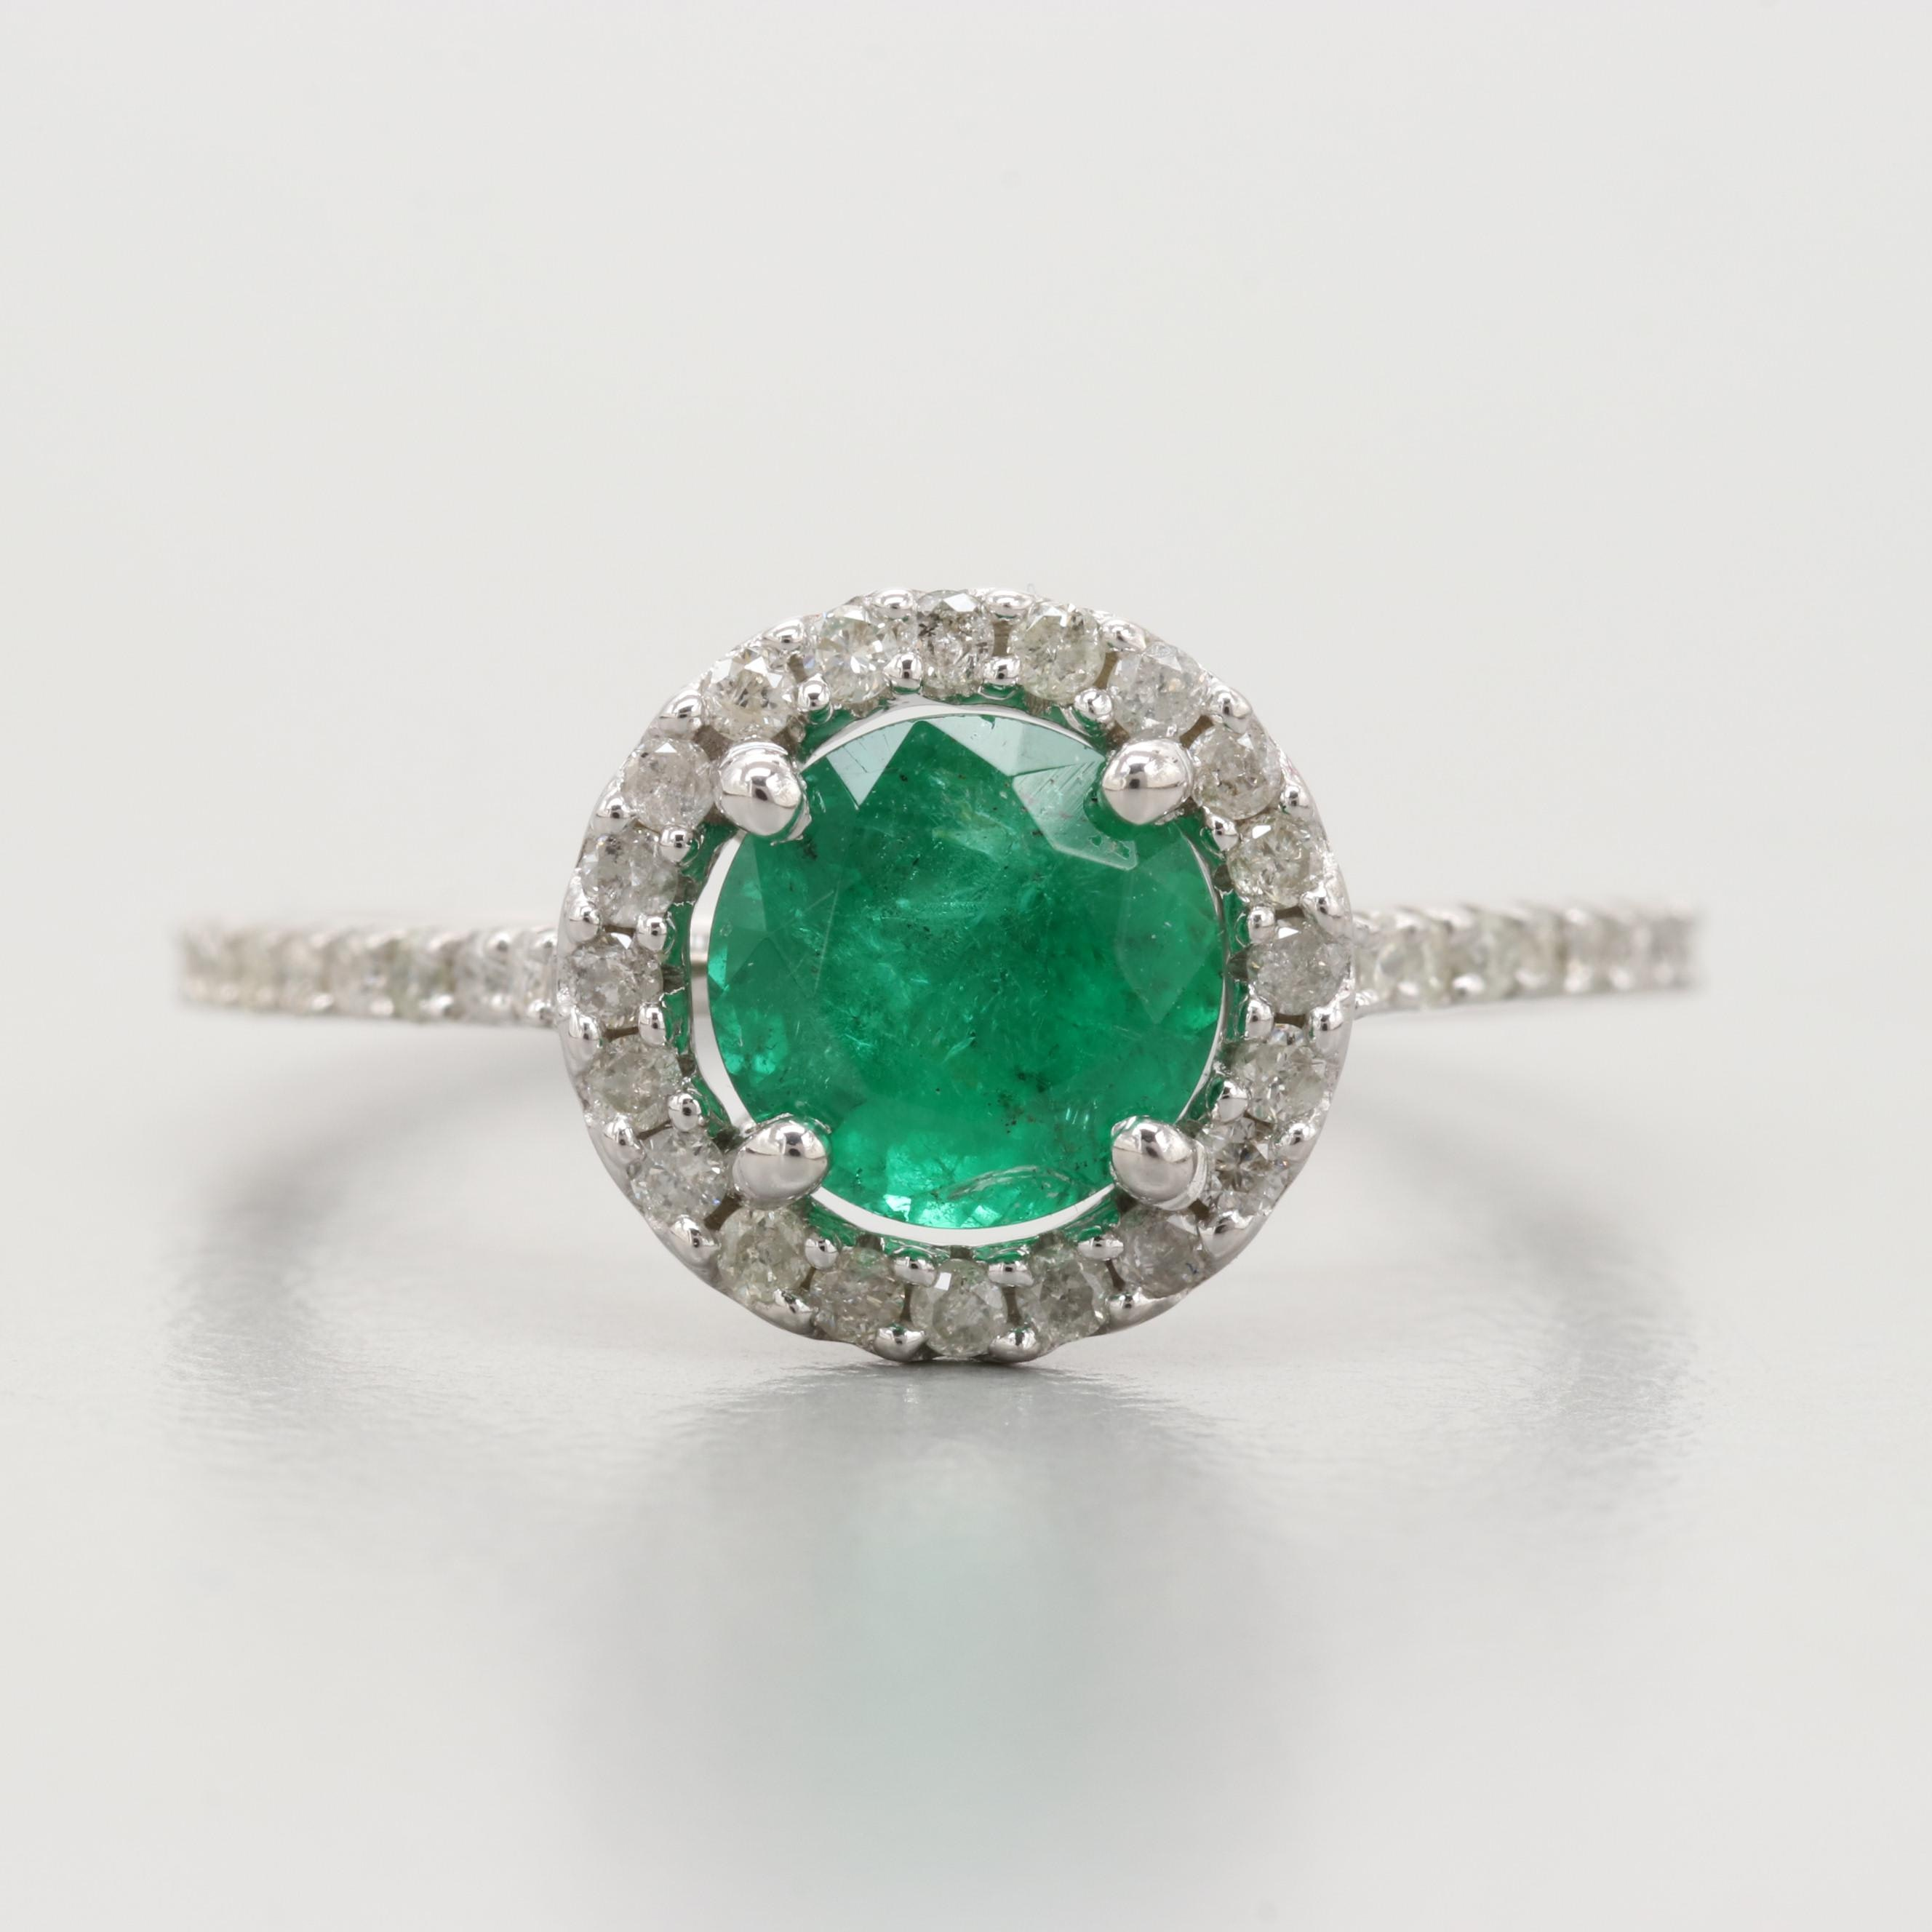 14K White Gold 1.04 CT Emerald and Diamond Ring